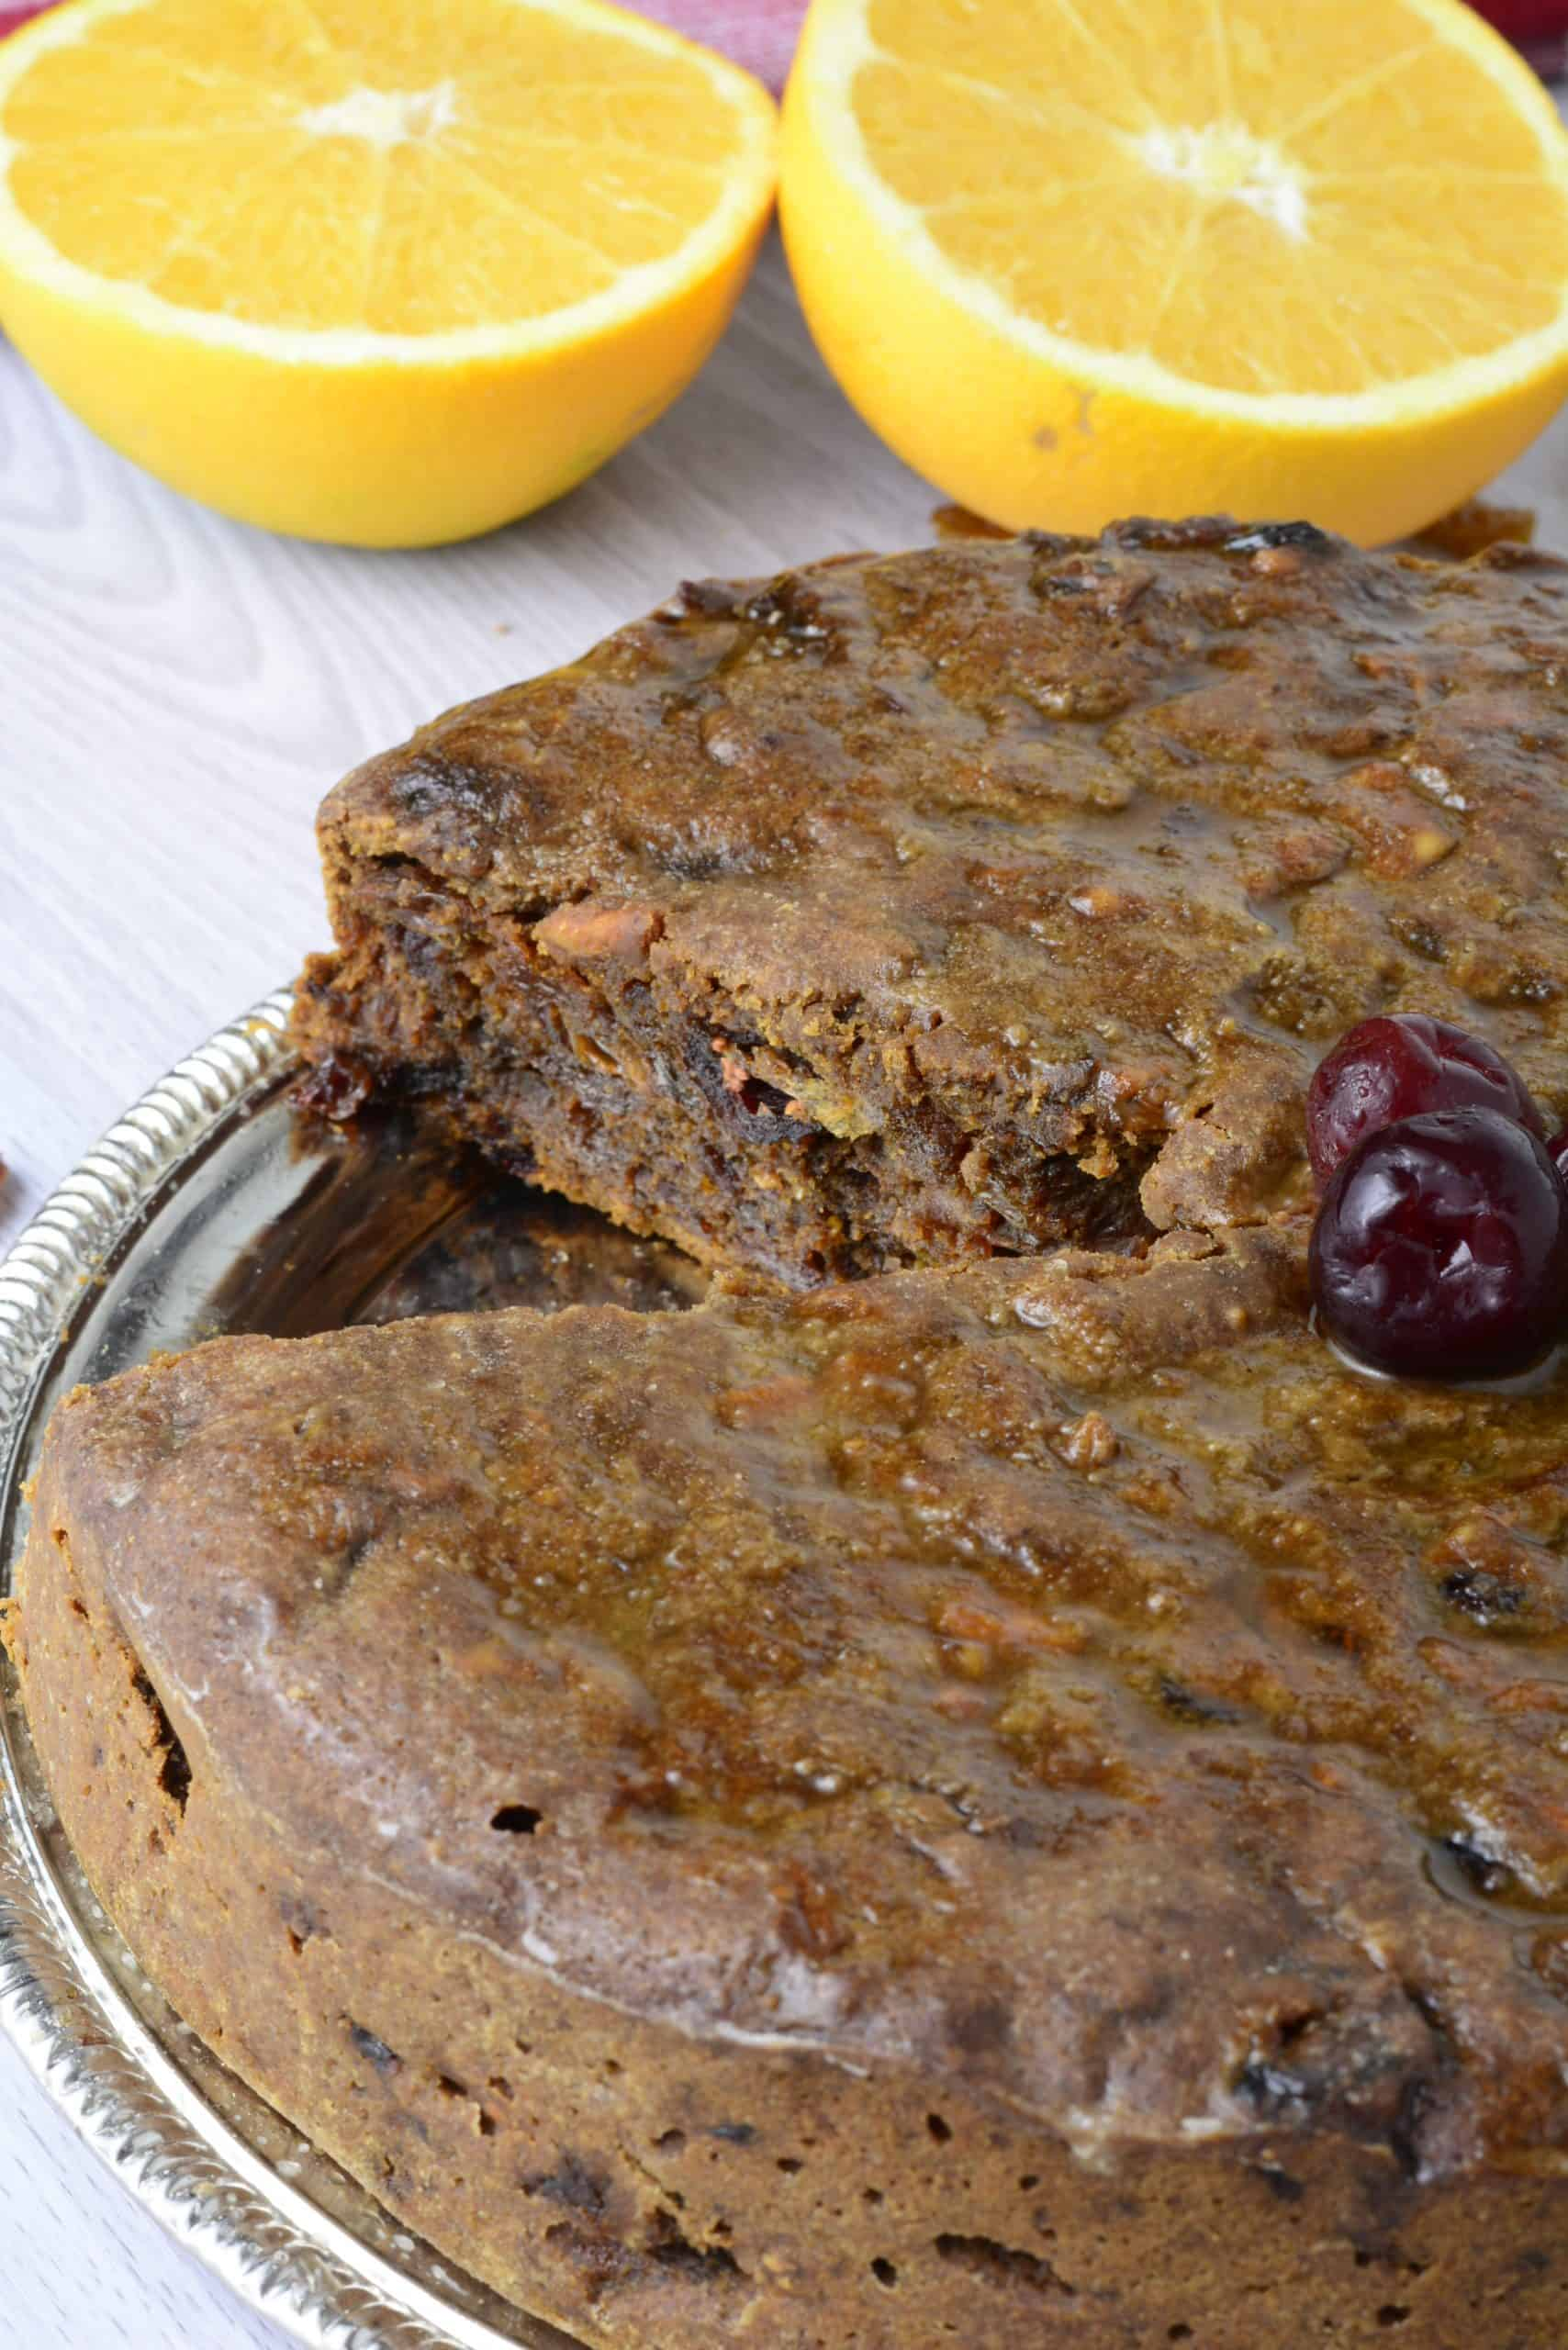 Freshly baked Christmas fruit cake decorated with bright red cherries